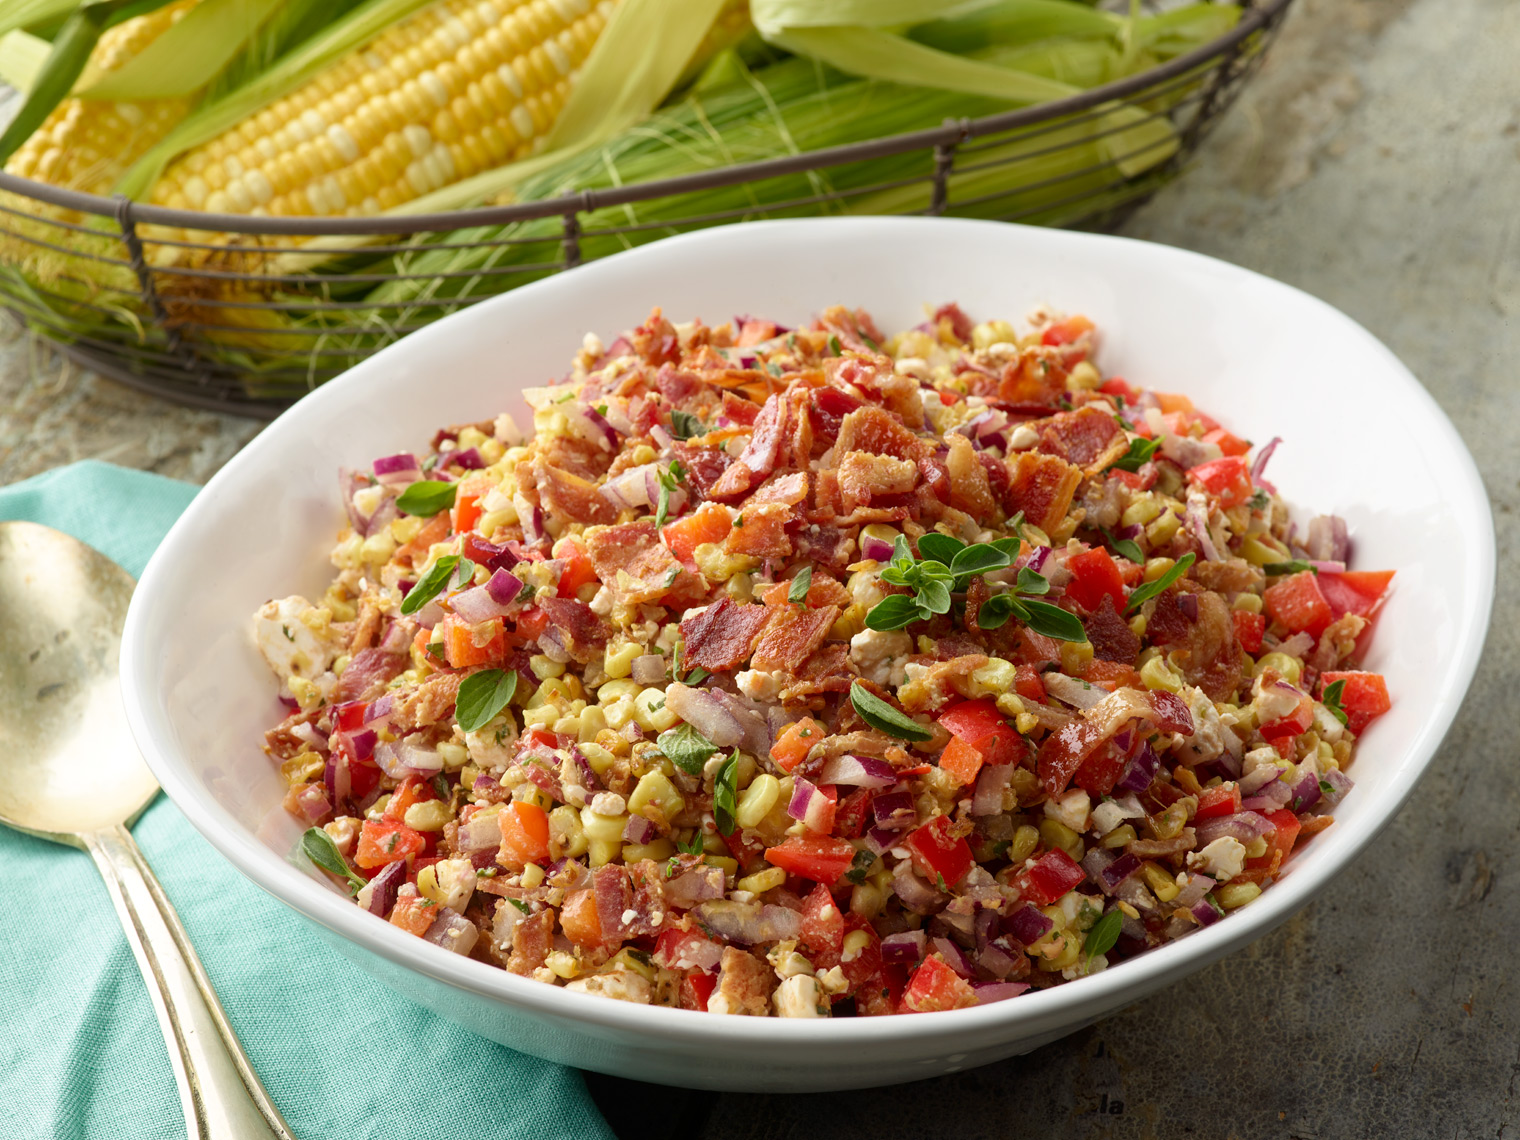 BaconCornSalad10311-copy